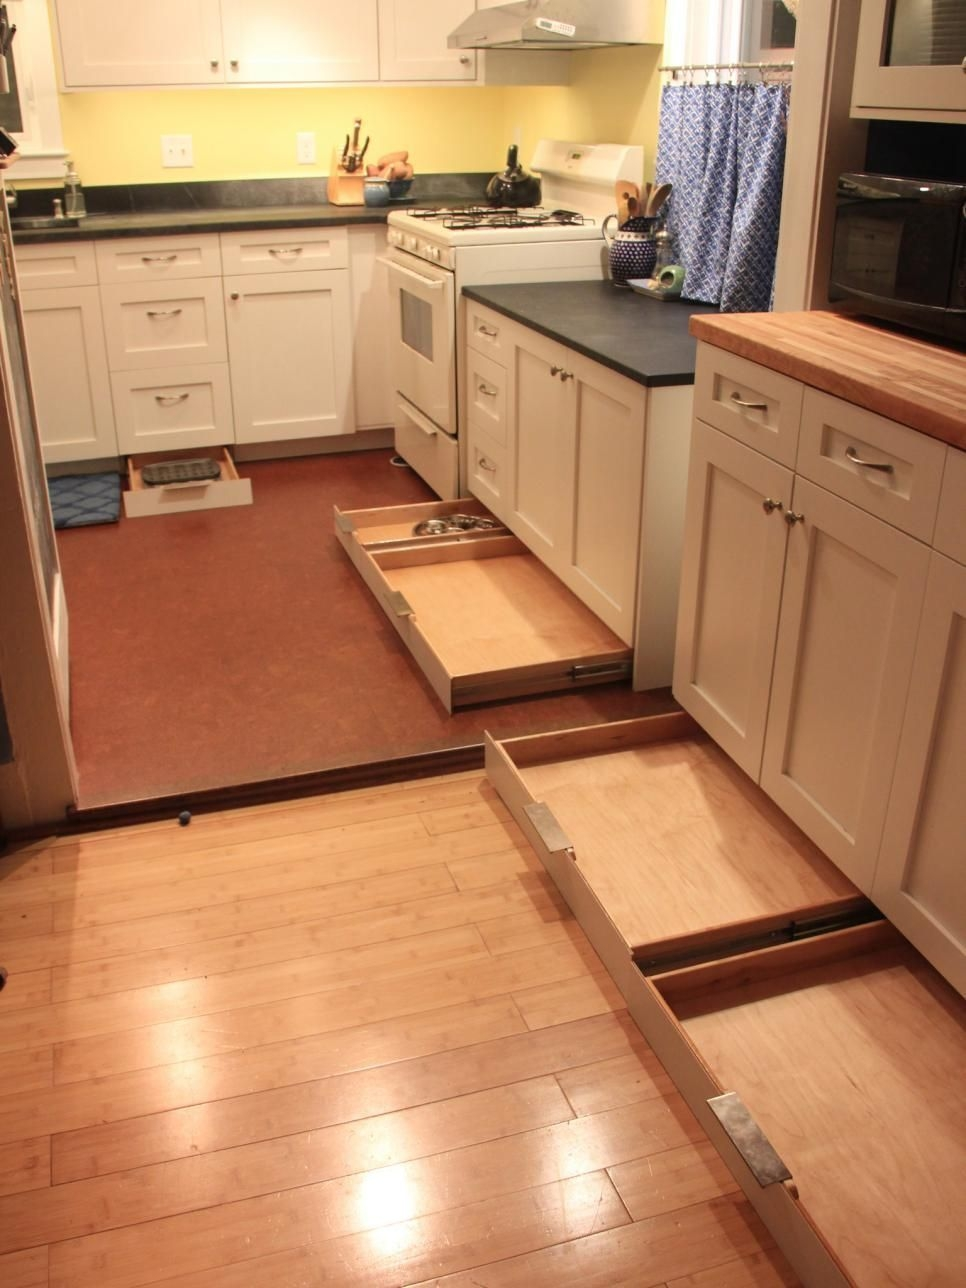 Affordable Small Kitchen Remodel Ideas23